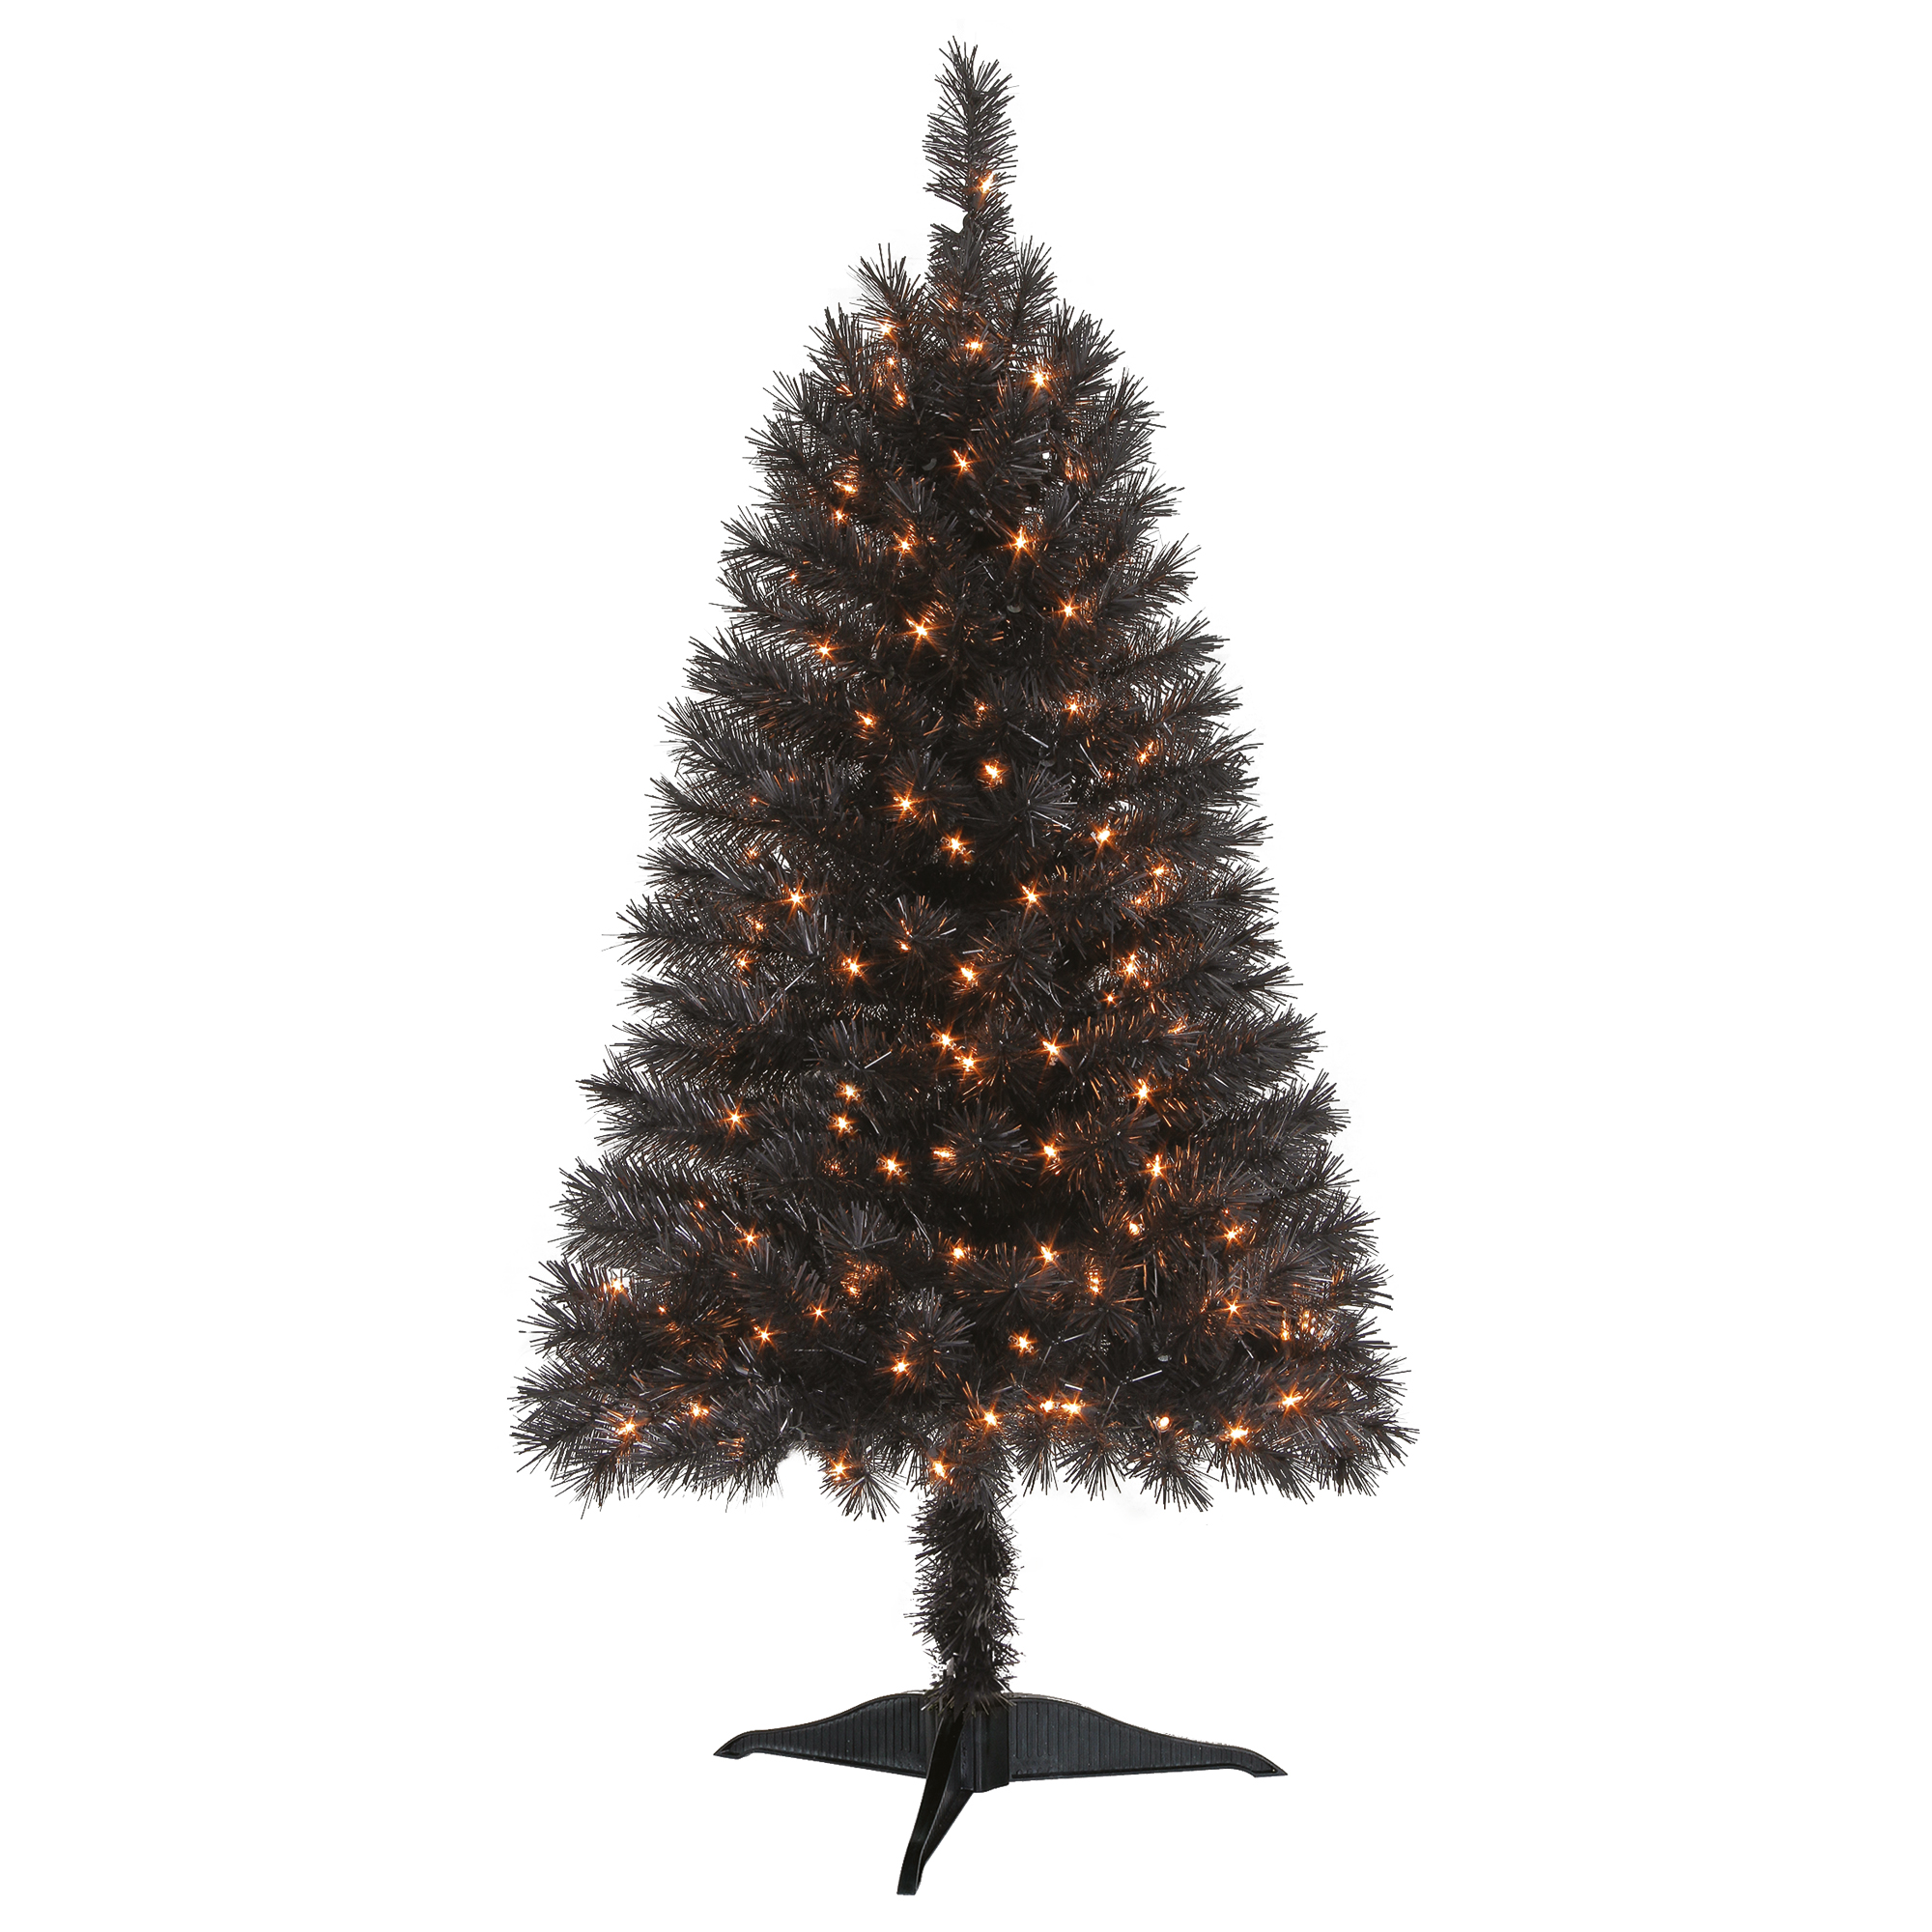 Holiday Time Prelit Spruce Christmas Tree 4 ft, Black ...